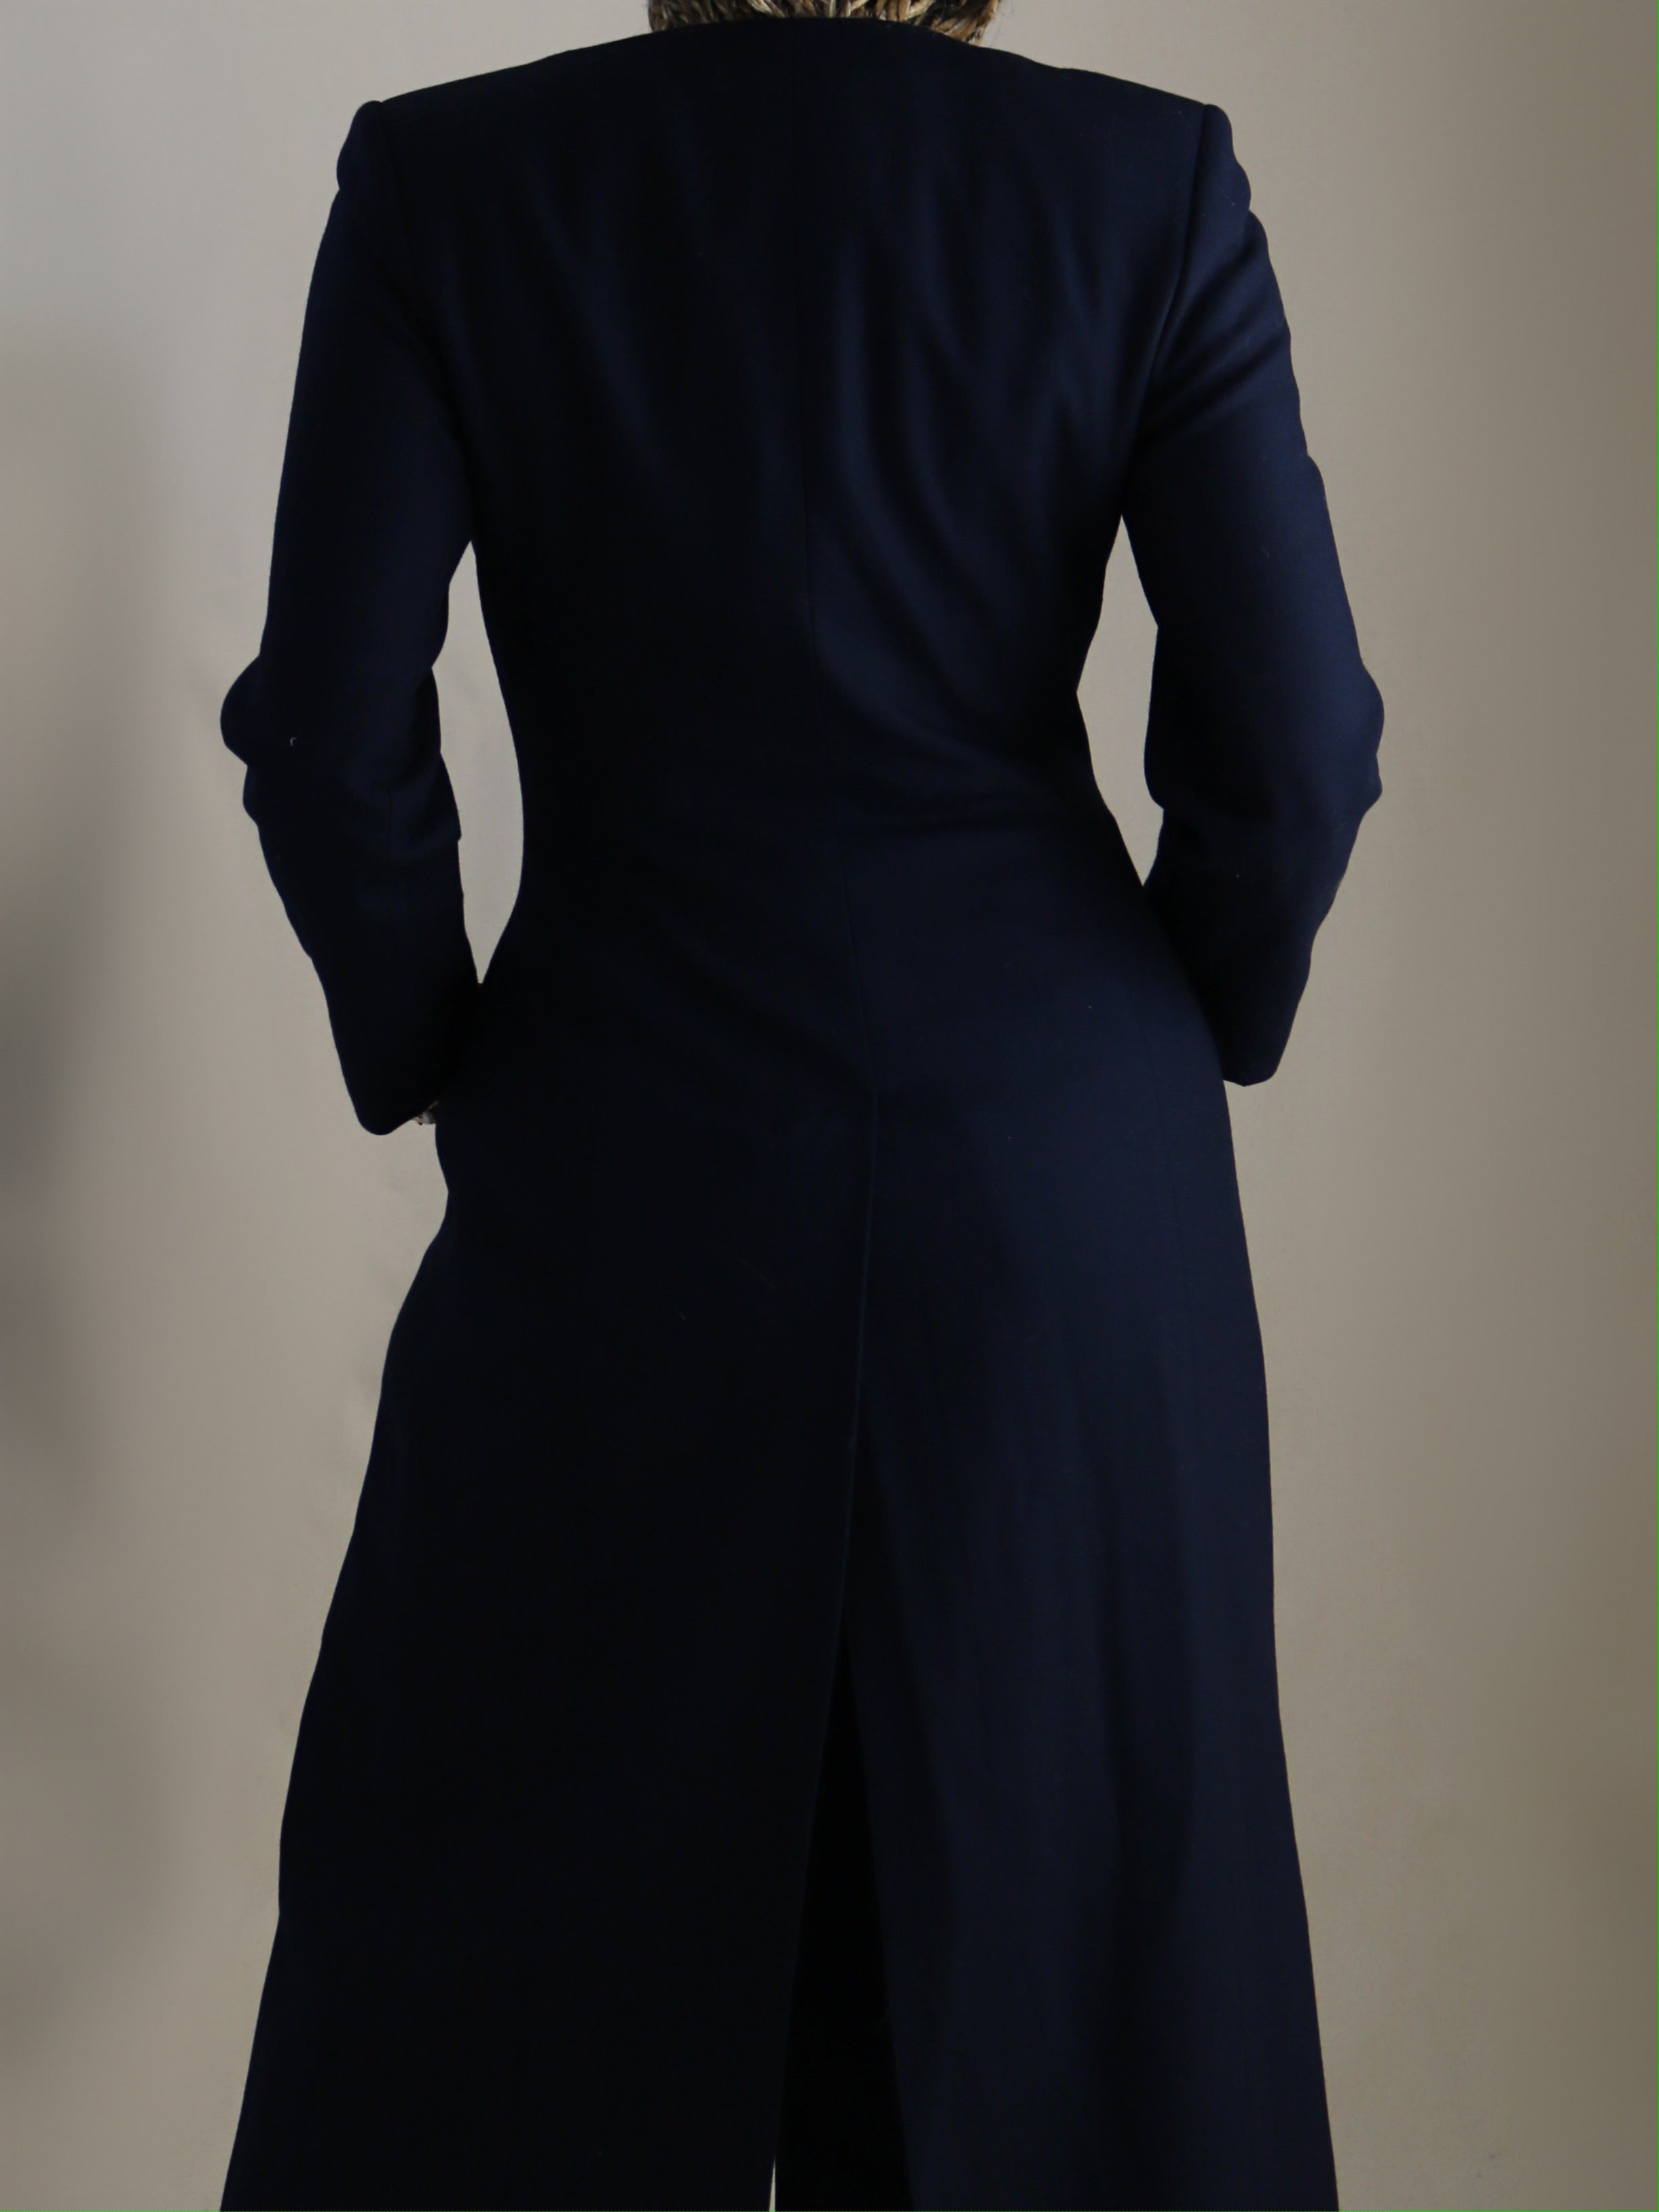 Iman layer, navy